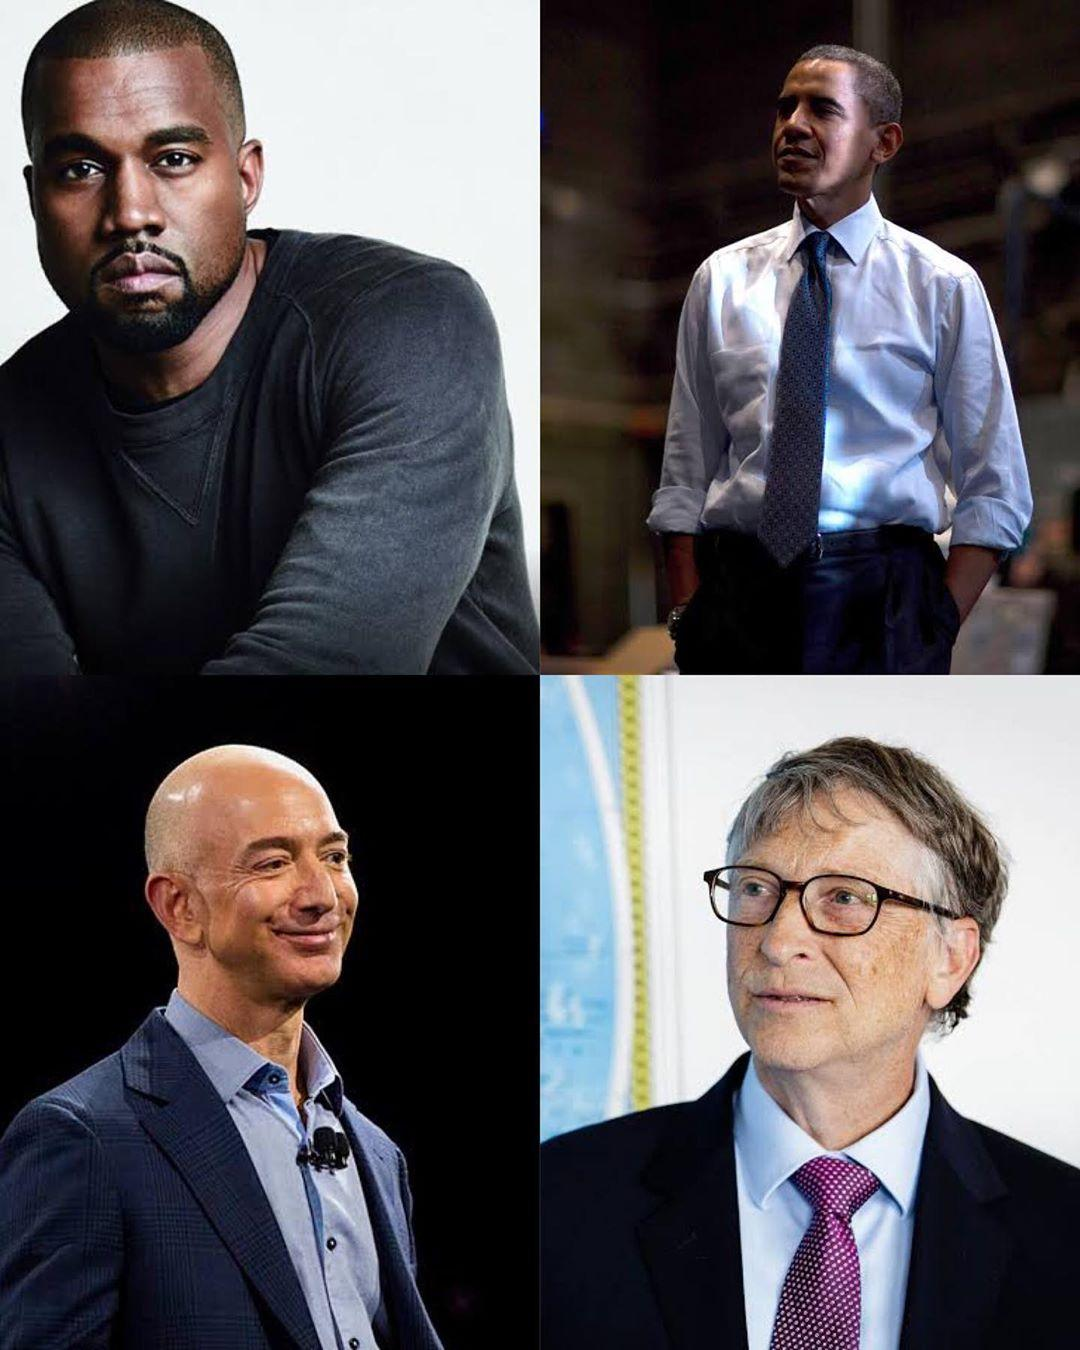 Hackers make millions of naira after hacking twitter accounts of Bill Gates, Barrack Obama, Jeff Bezoz, Kanye West, others